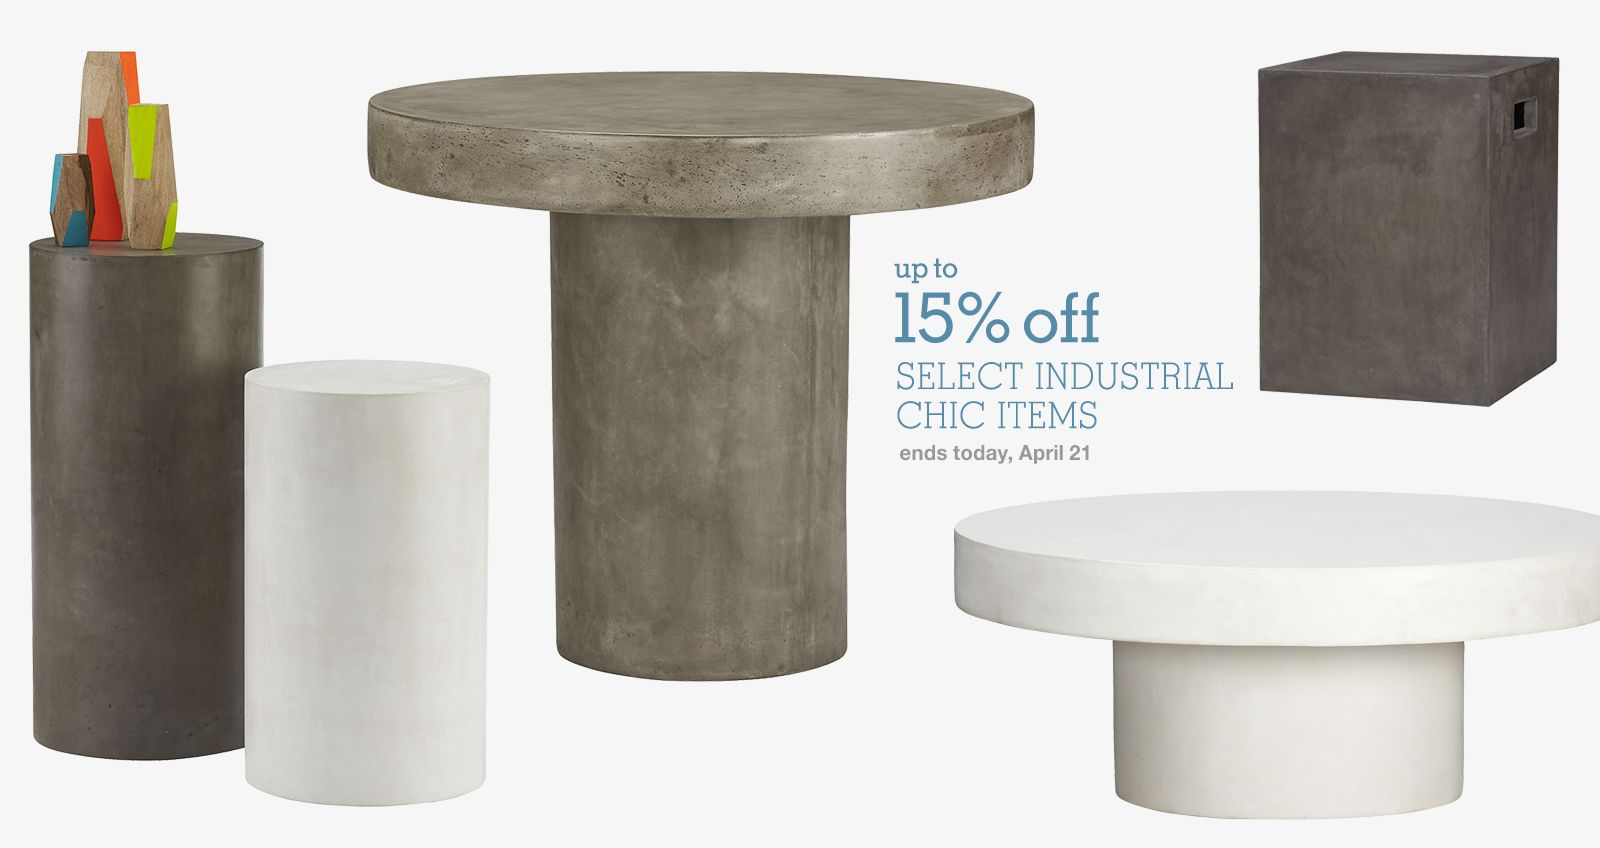 up to 15% off select industrial chic items through 4/21